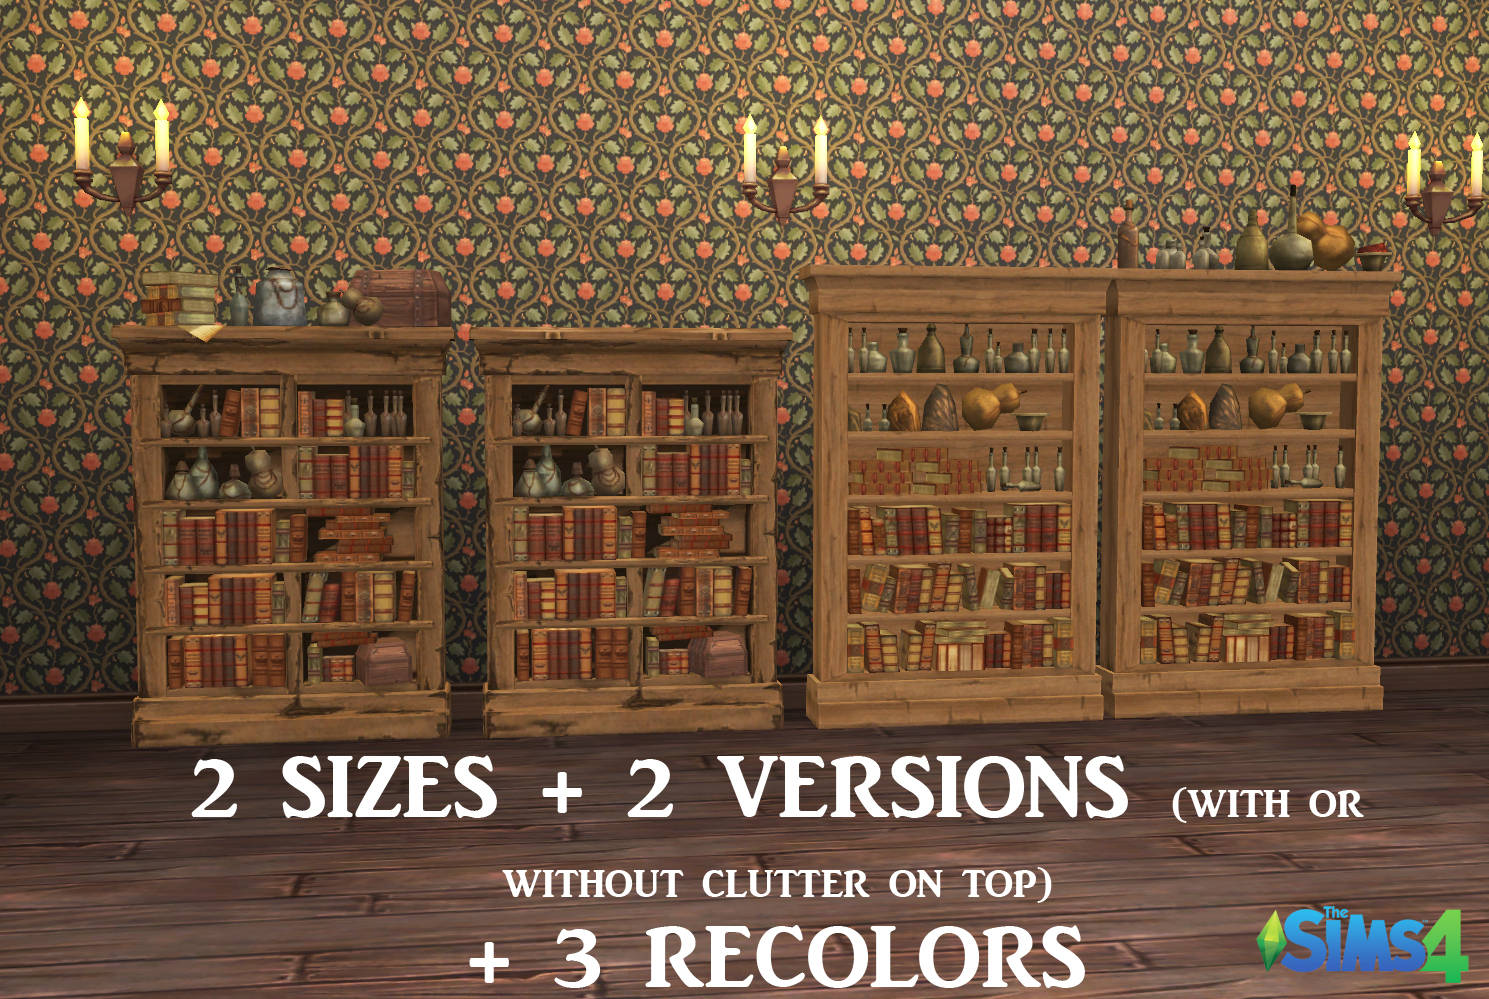 Very Impressive portraiture of  : The Sims Medieval Bookcases for Sims 4 History Lover's Sims Blog with #2966A2 color and 1489x999 pixels